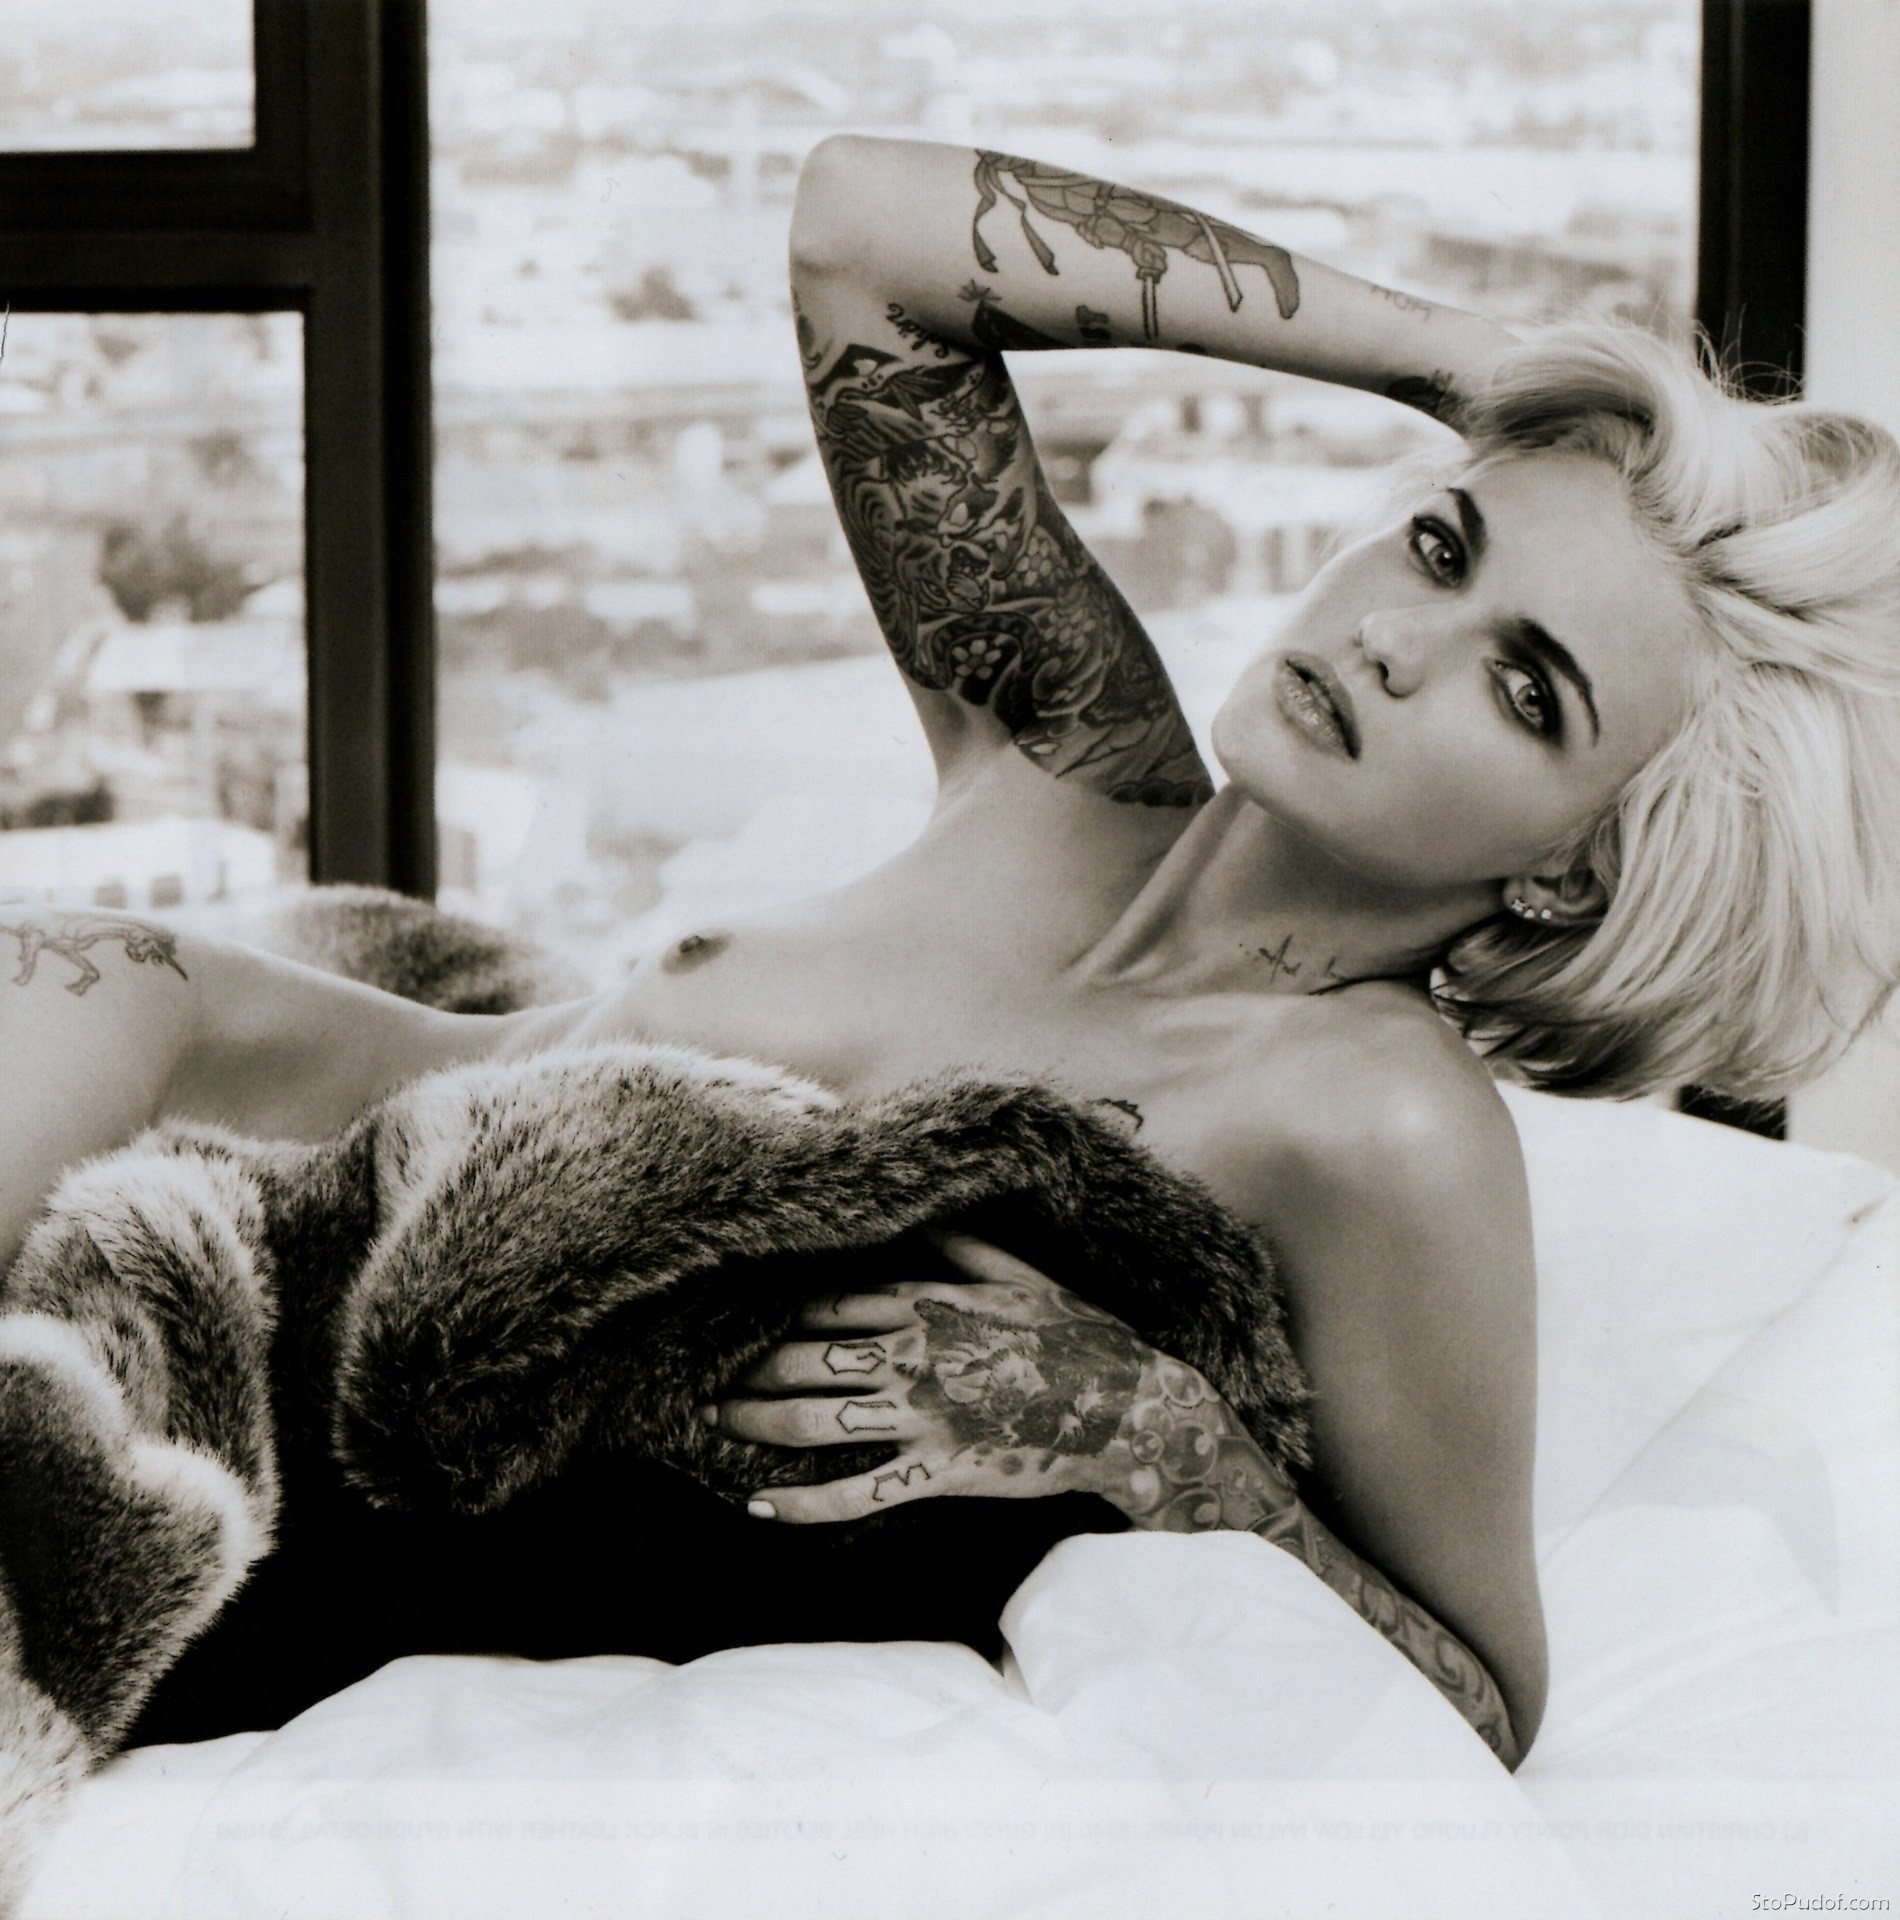 Ruby Rose nude picture download - UkPhotoSafari